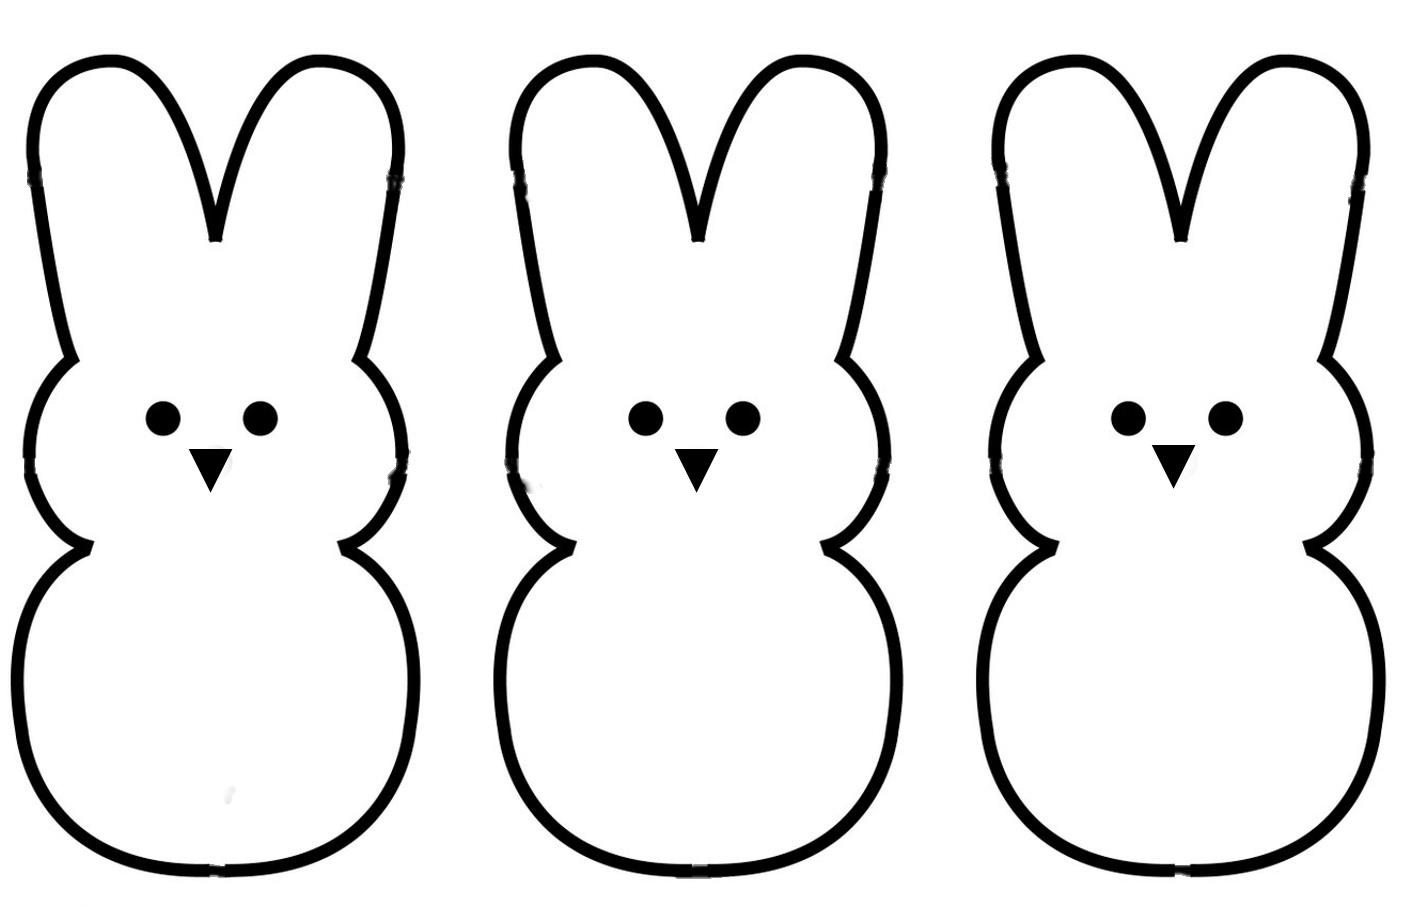 peeps silhouette at getdrawings com free for personal use peeps rh getdrawings com peeps clipart peeps clipart free